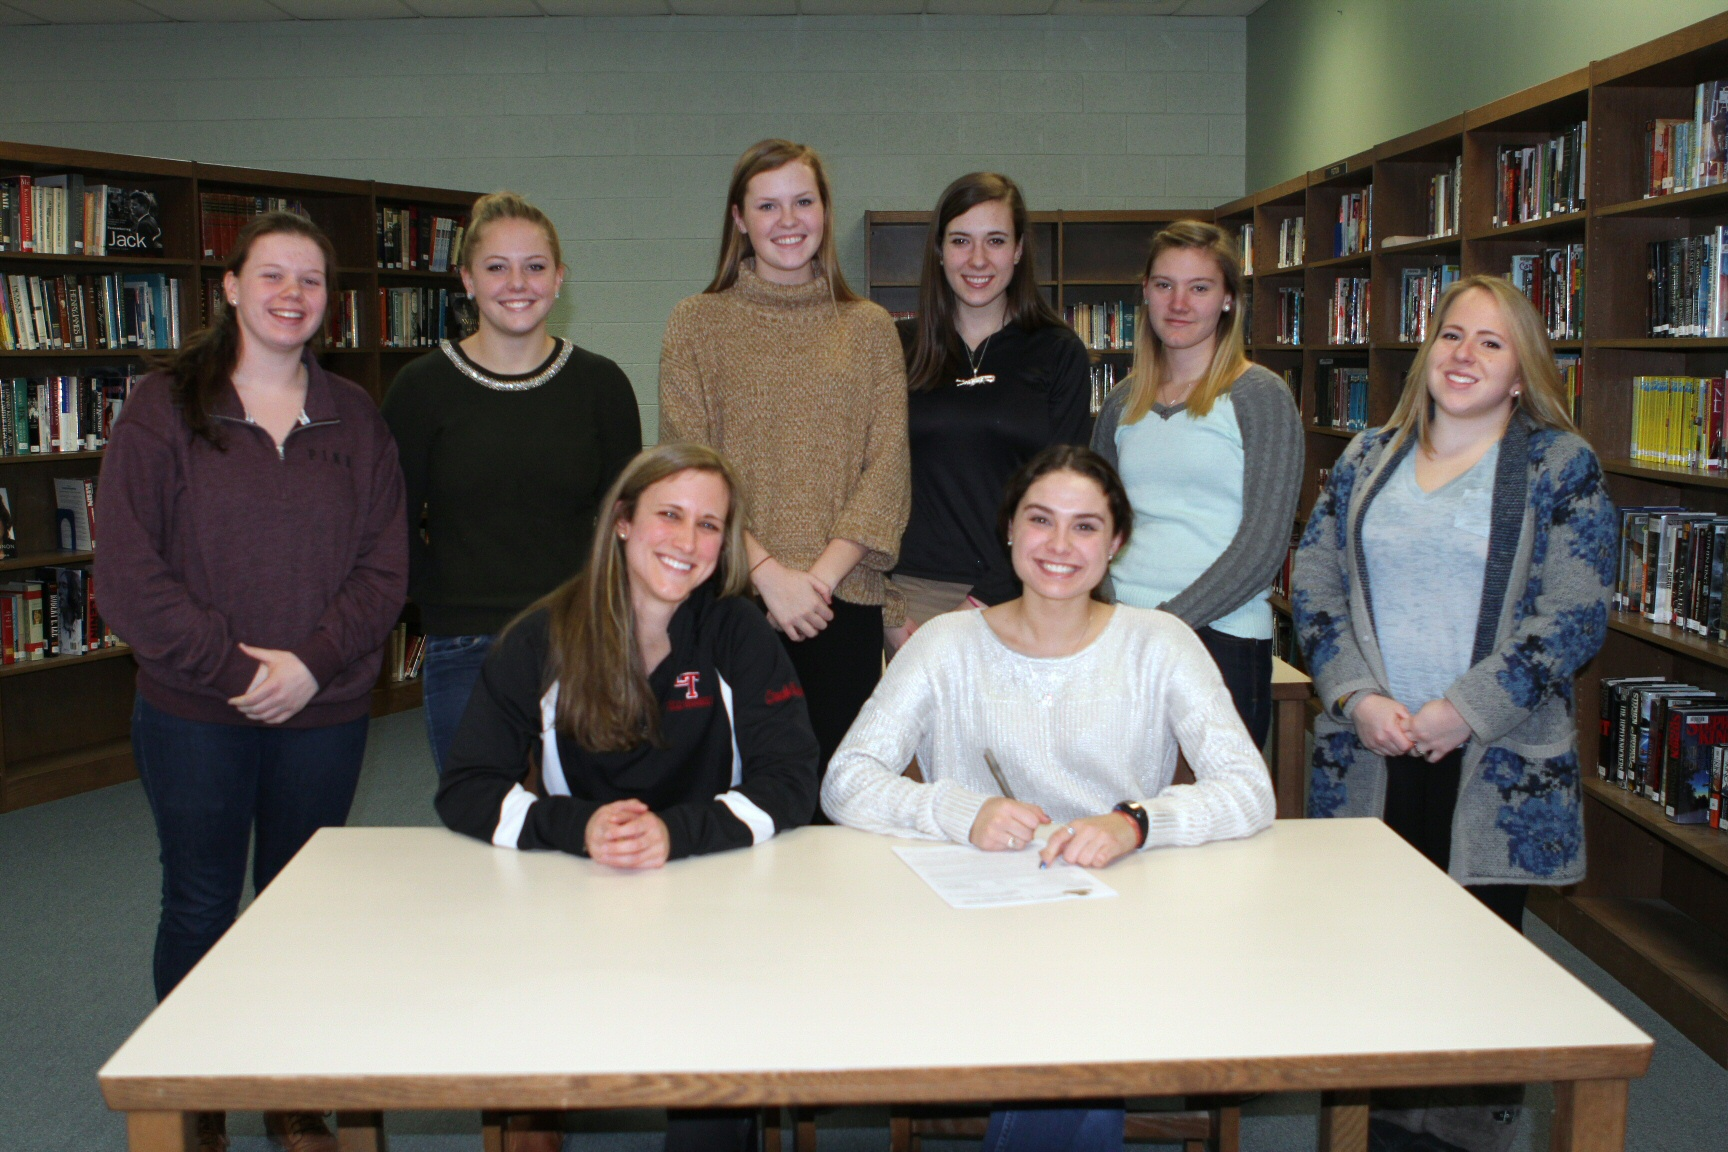 Shelby and teammates at signing (2)